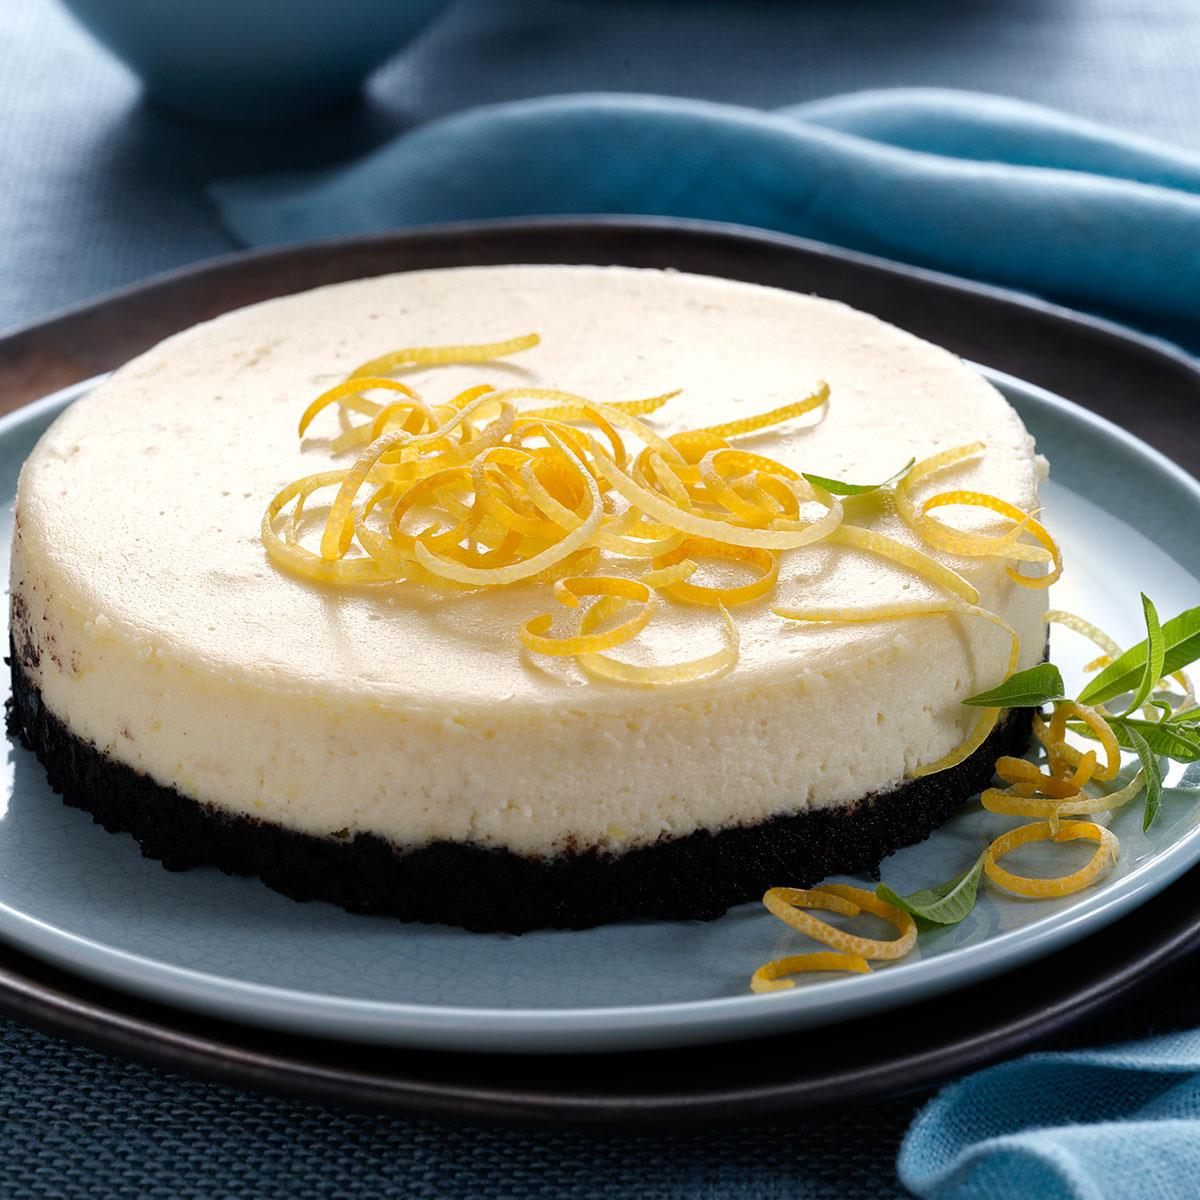 How to cook a homemade cheesecake